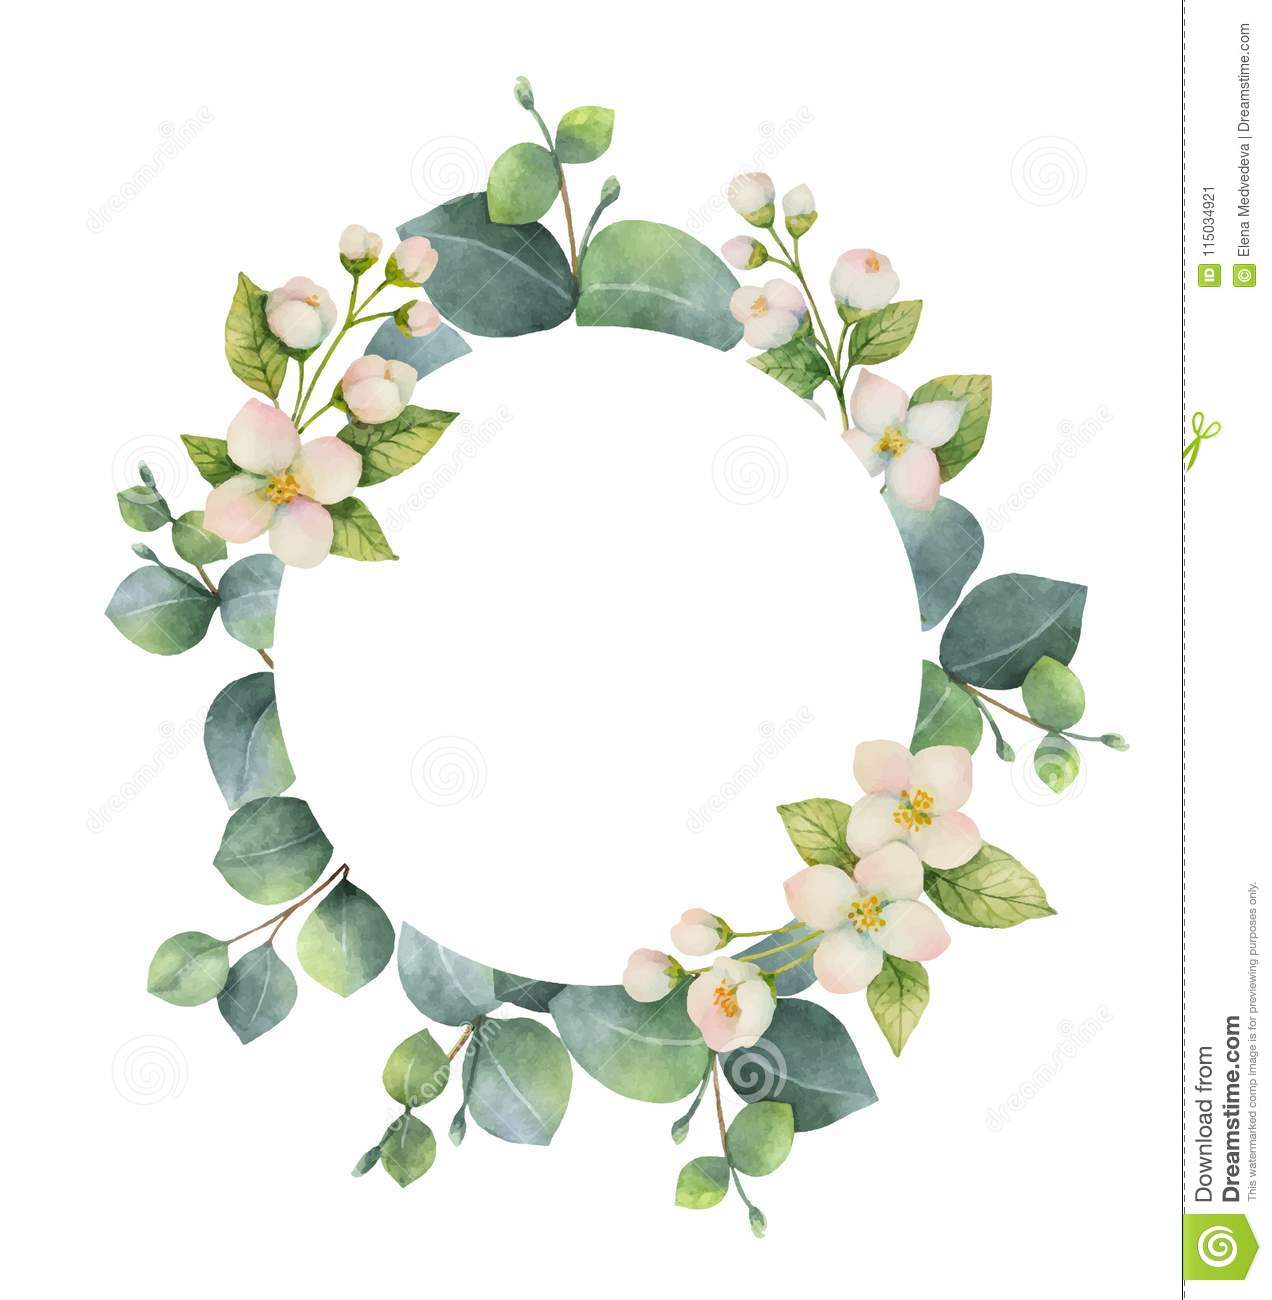 Watercolor Vector Wreath With Green Eucalyptus Leaves Jasmine